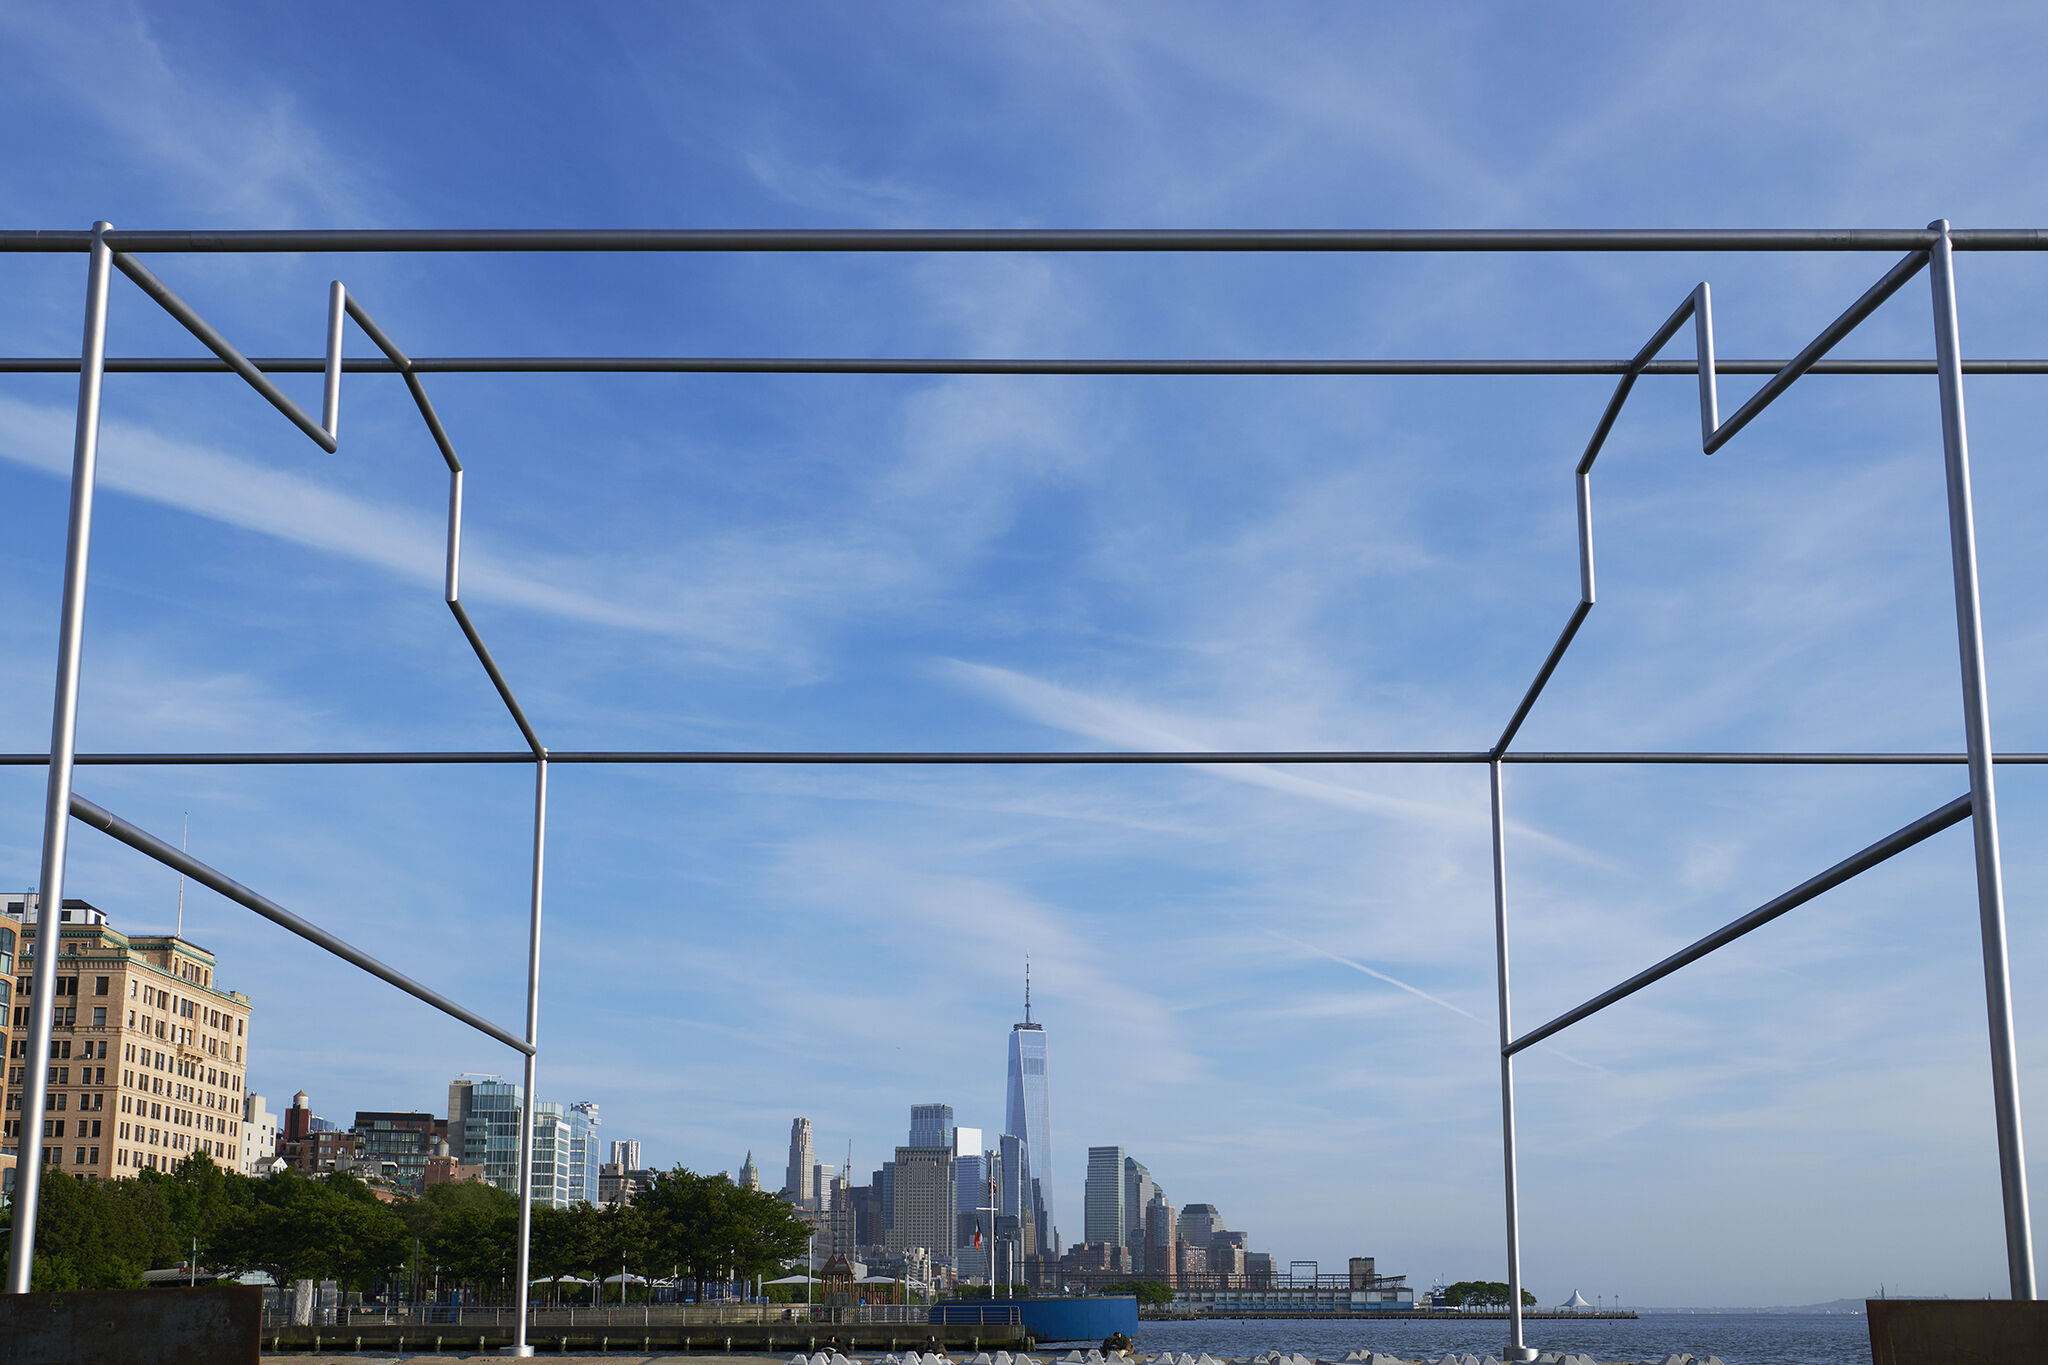 Close-up view of Day's End steel sculpture framing the Manhattan skyline in the background.